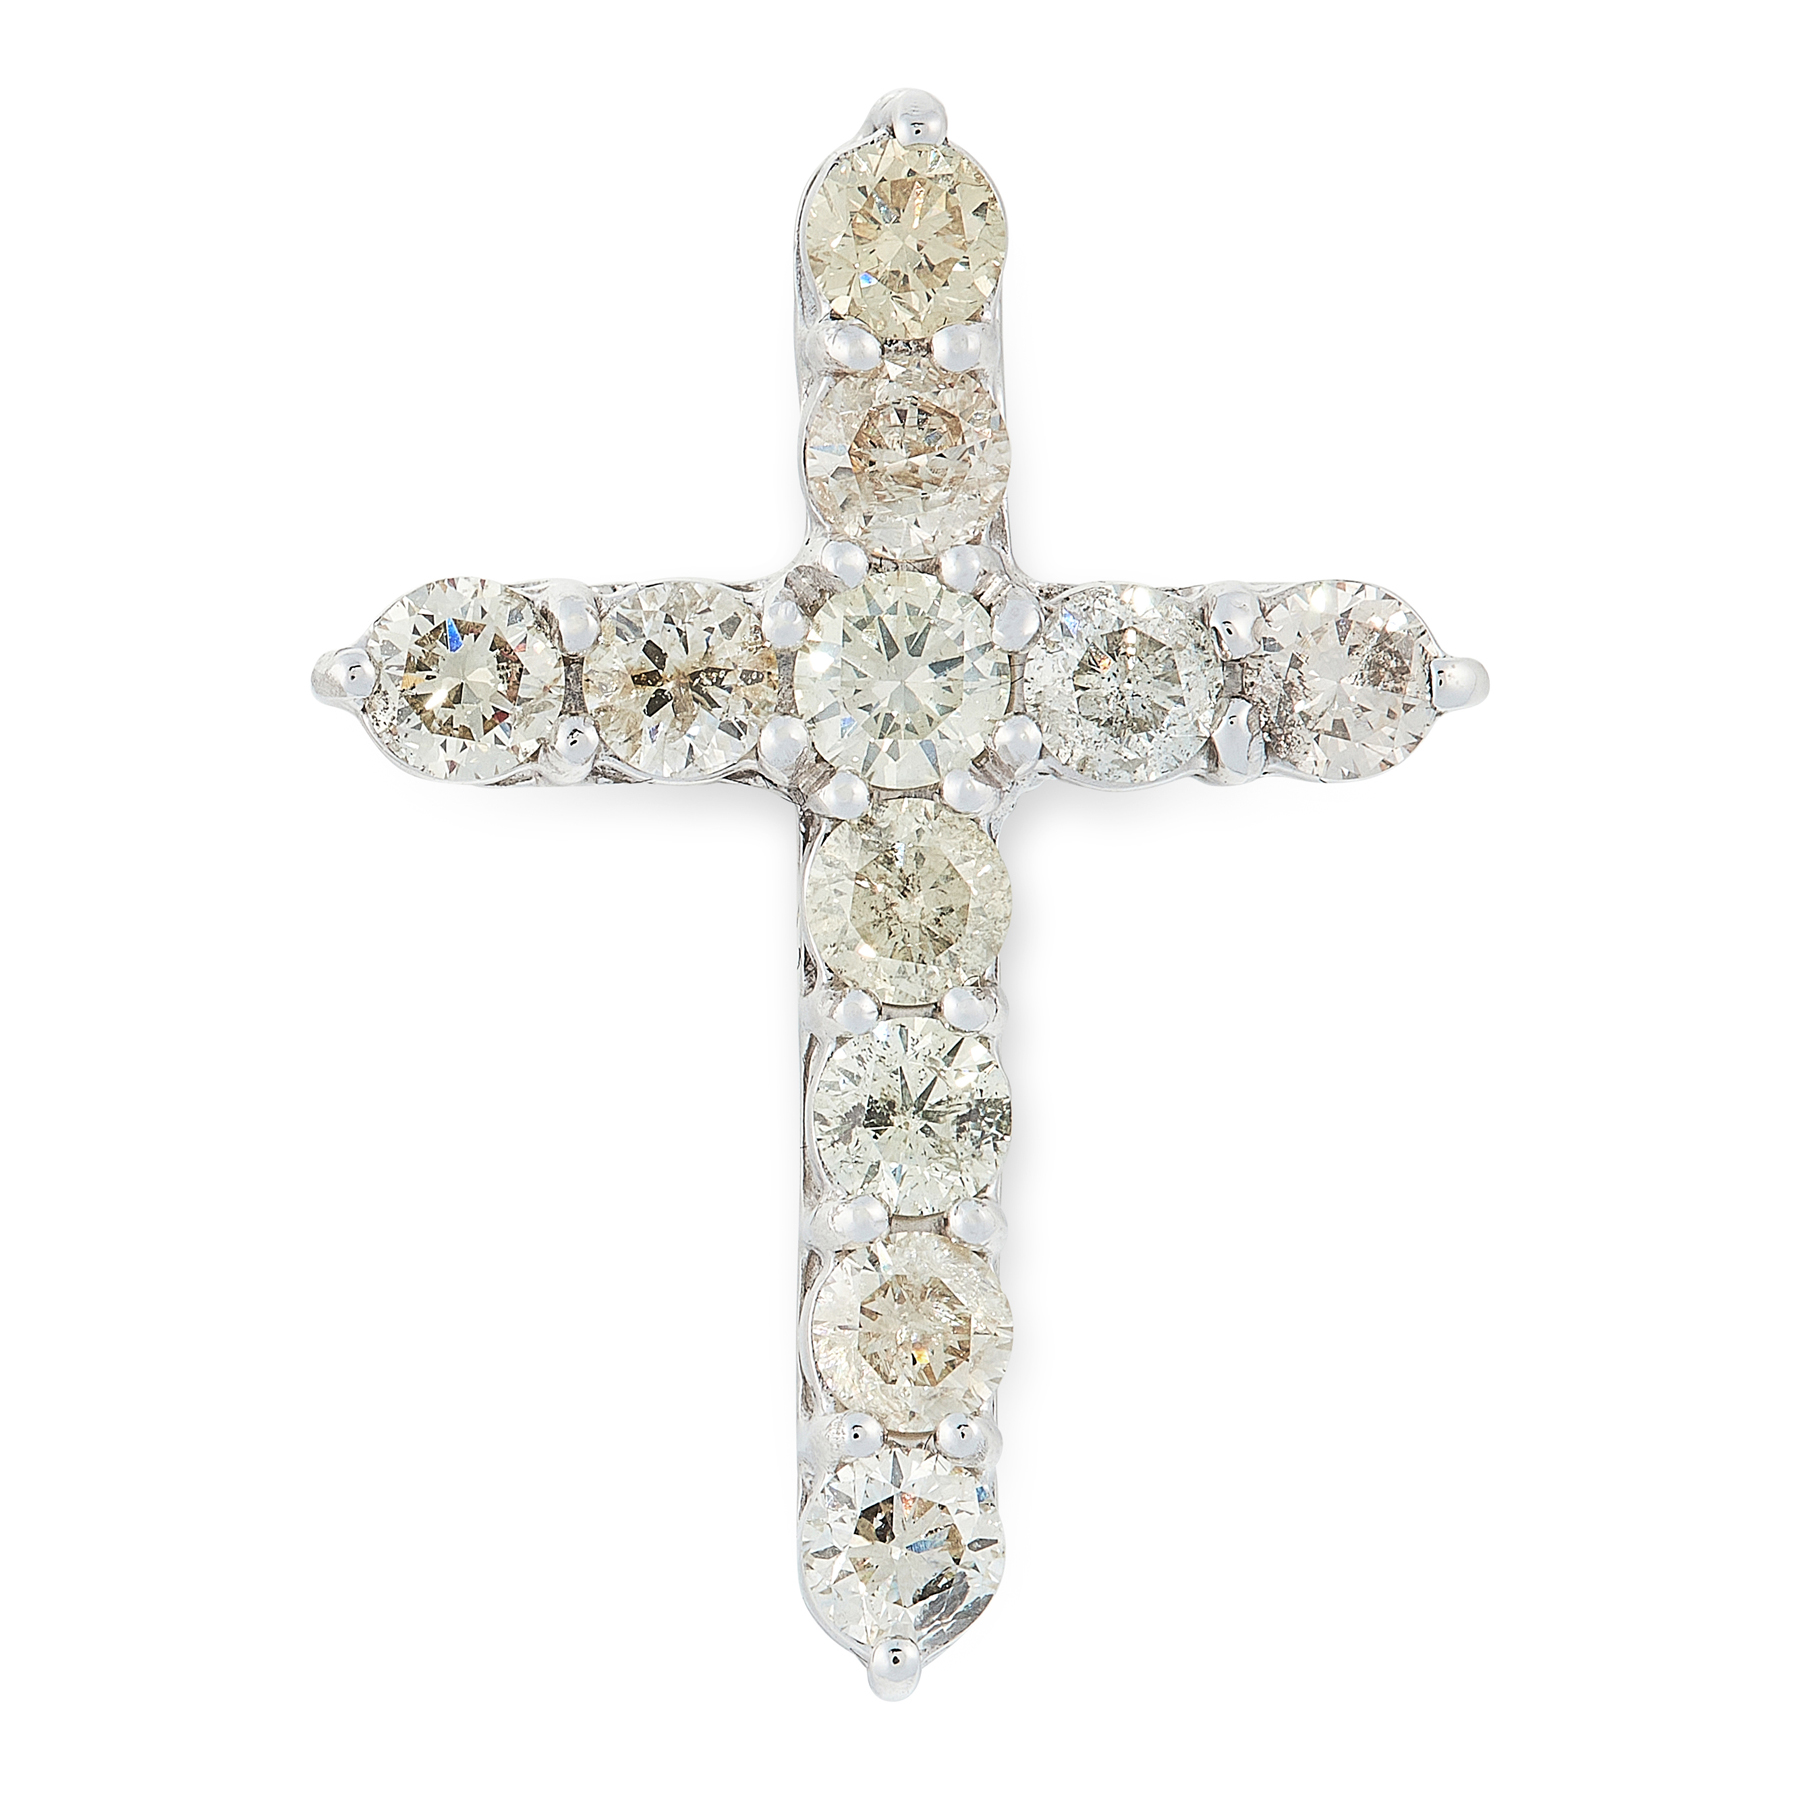 A DIAMOND CROSS PENDANT in 14ct white gold, designed as a cross, set with eleven round cut